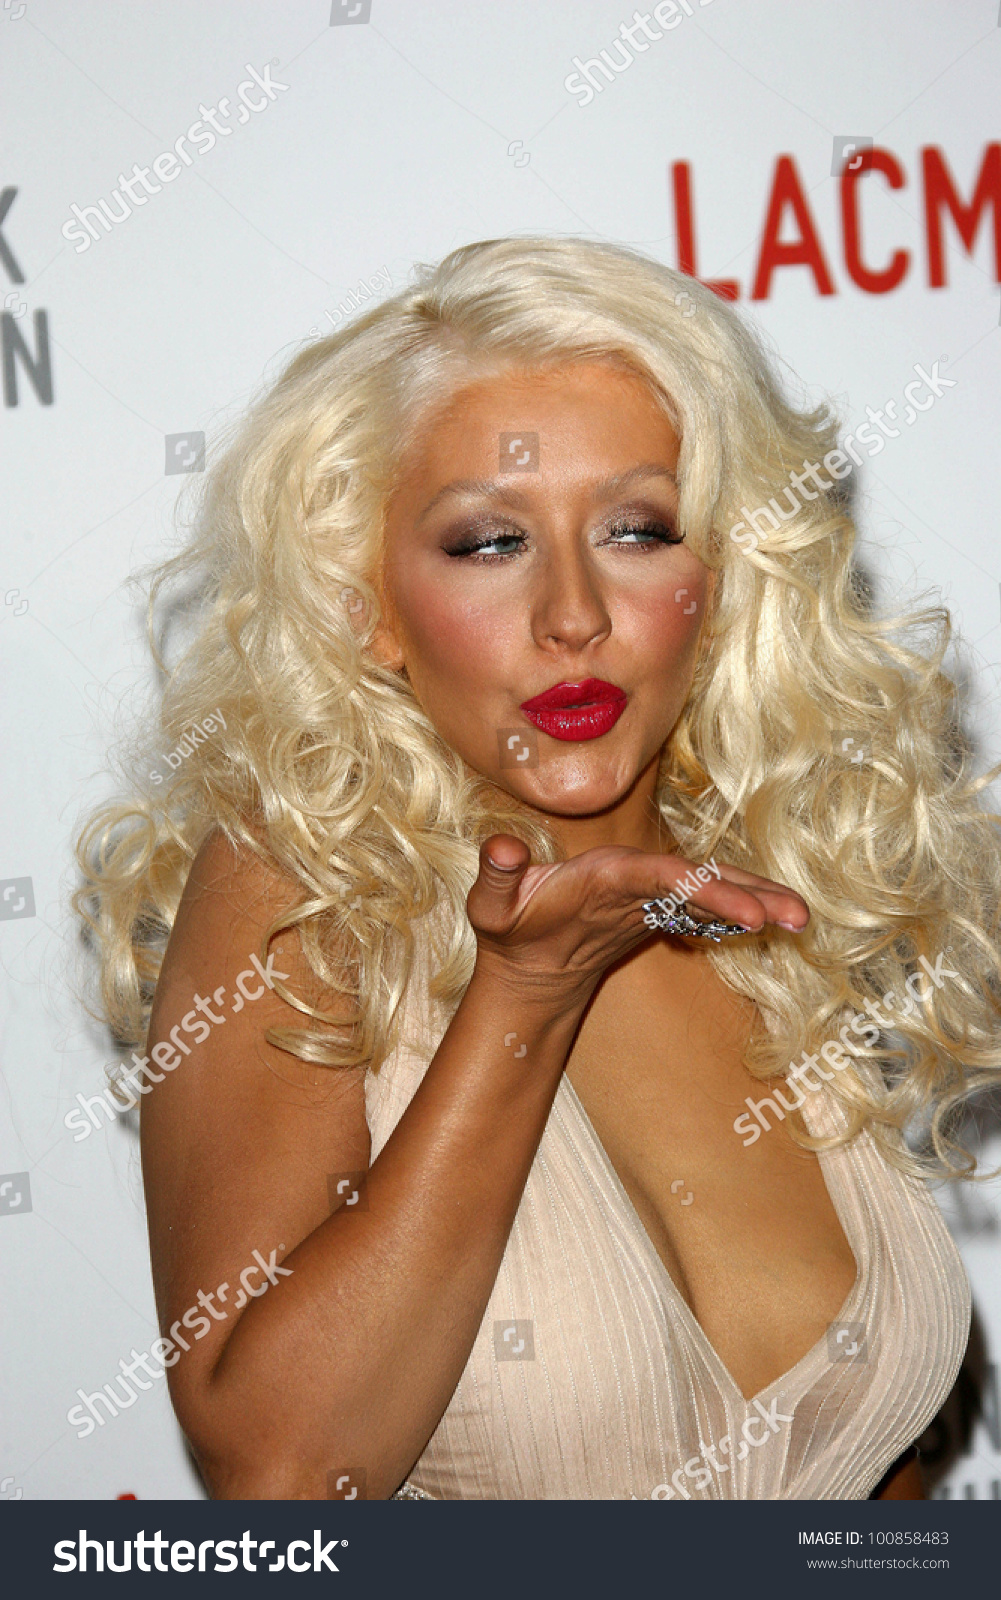 Forum on this topic: Caroline McKenzie, 25-christina-aguilera/